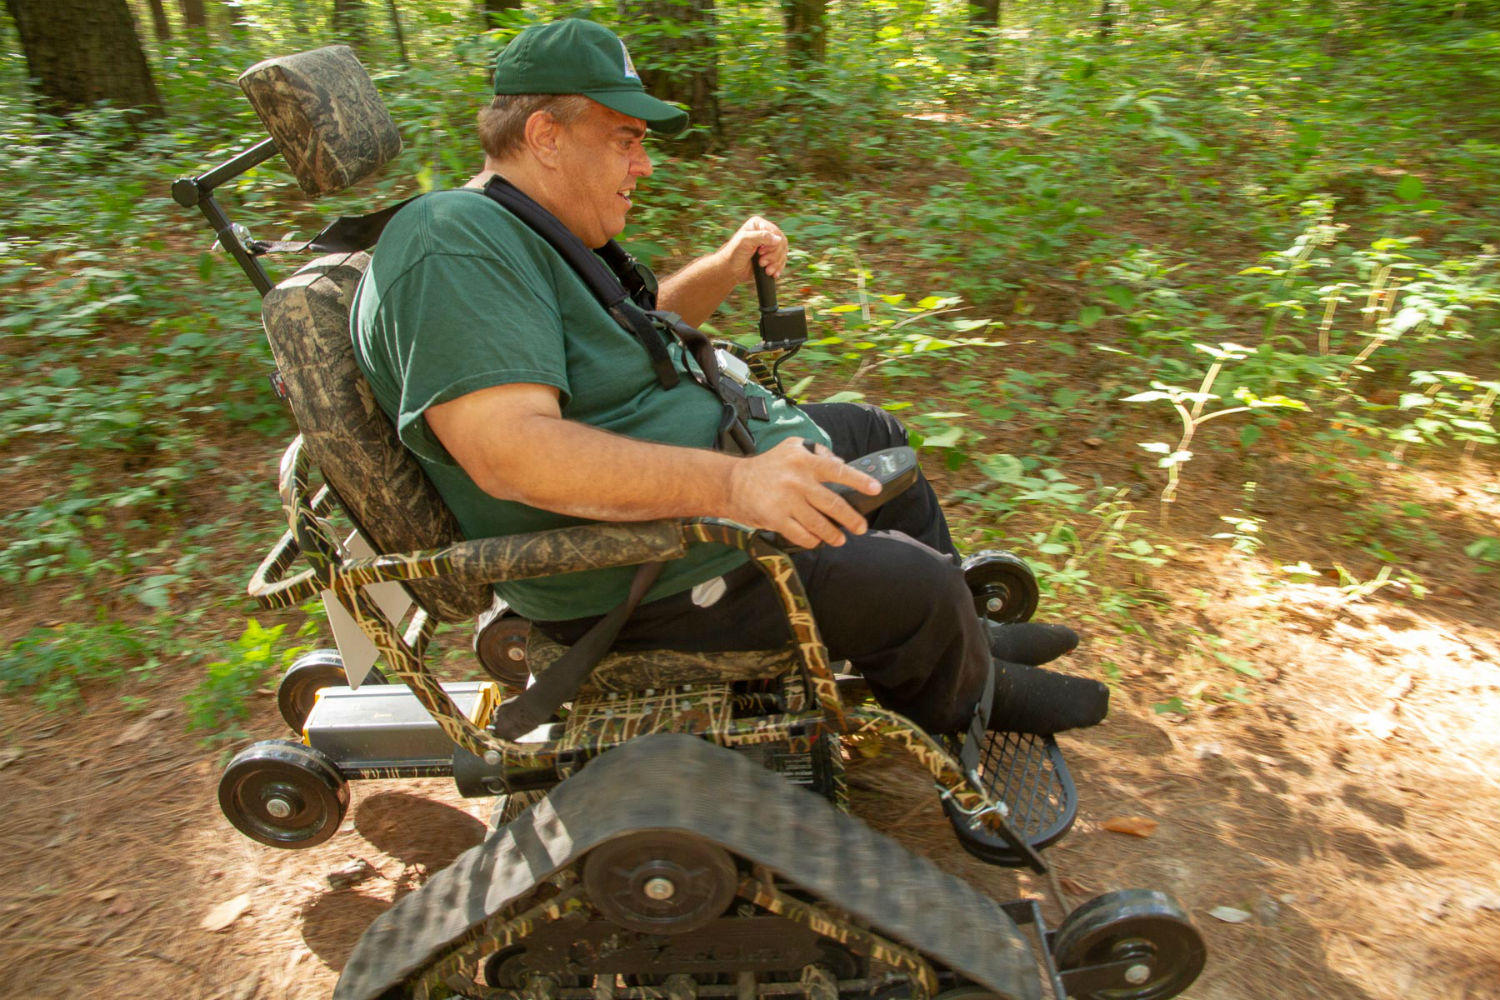 action track chair hanging nest outdoor the outdoors become accessible to missourians with disabilities st ray schultz a missouri department of conservation volunteer rides an